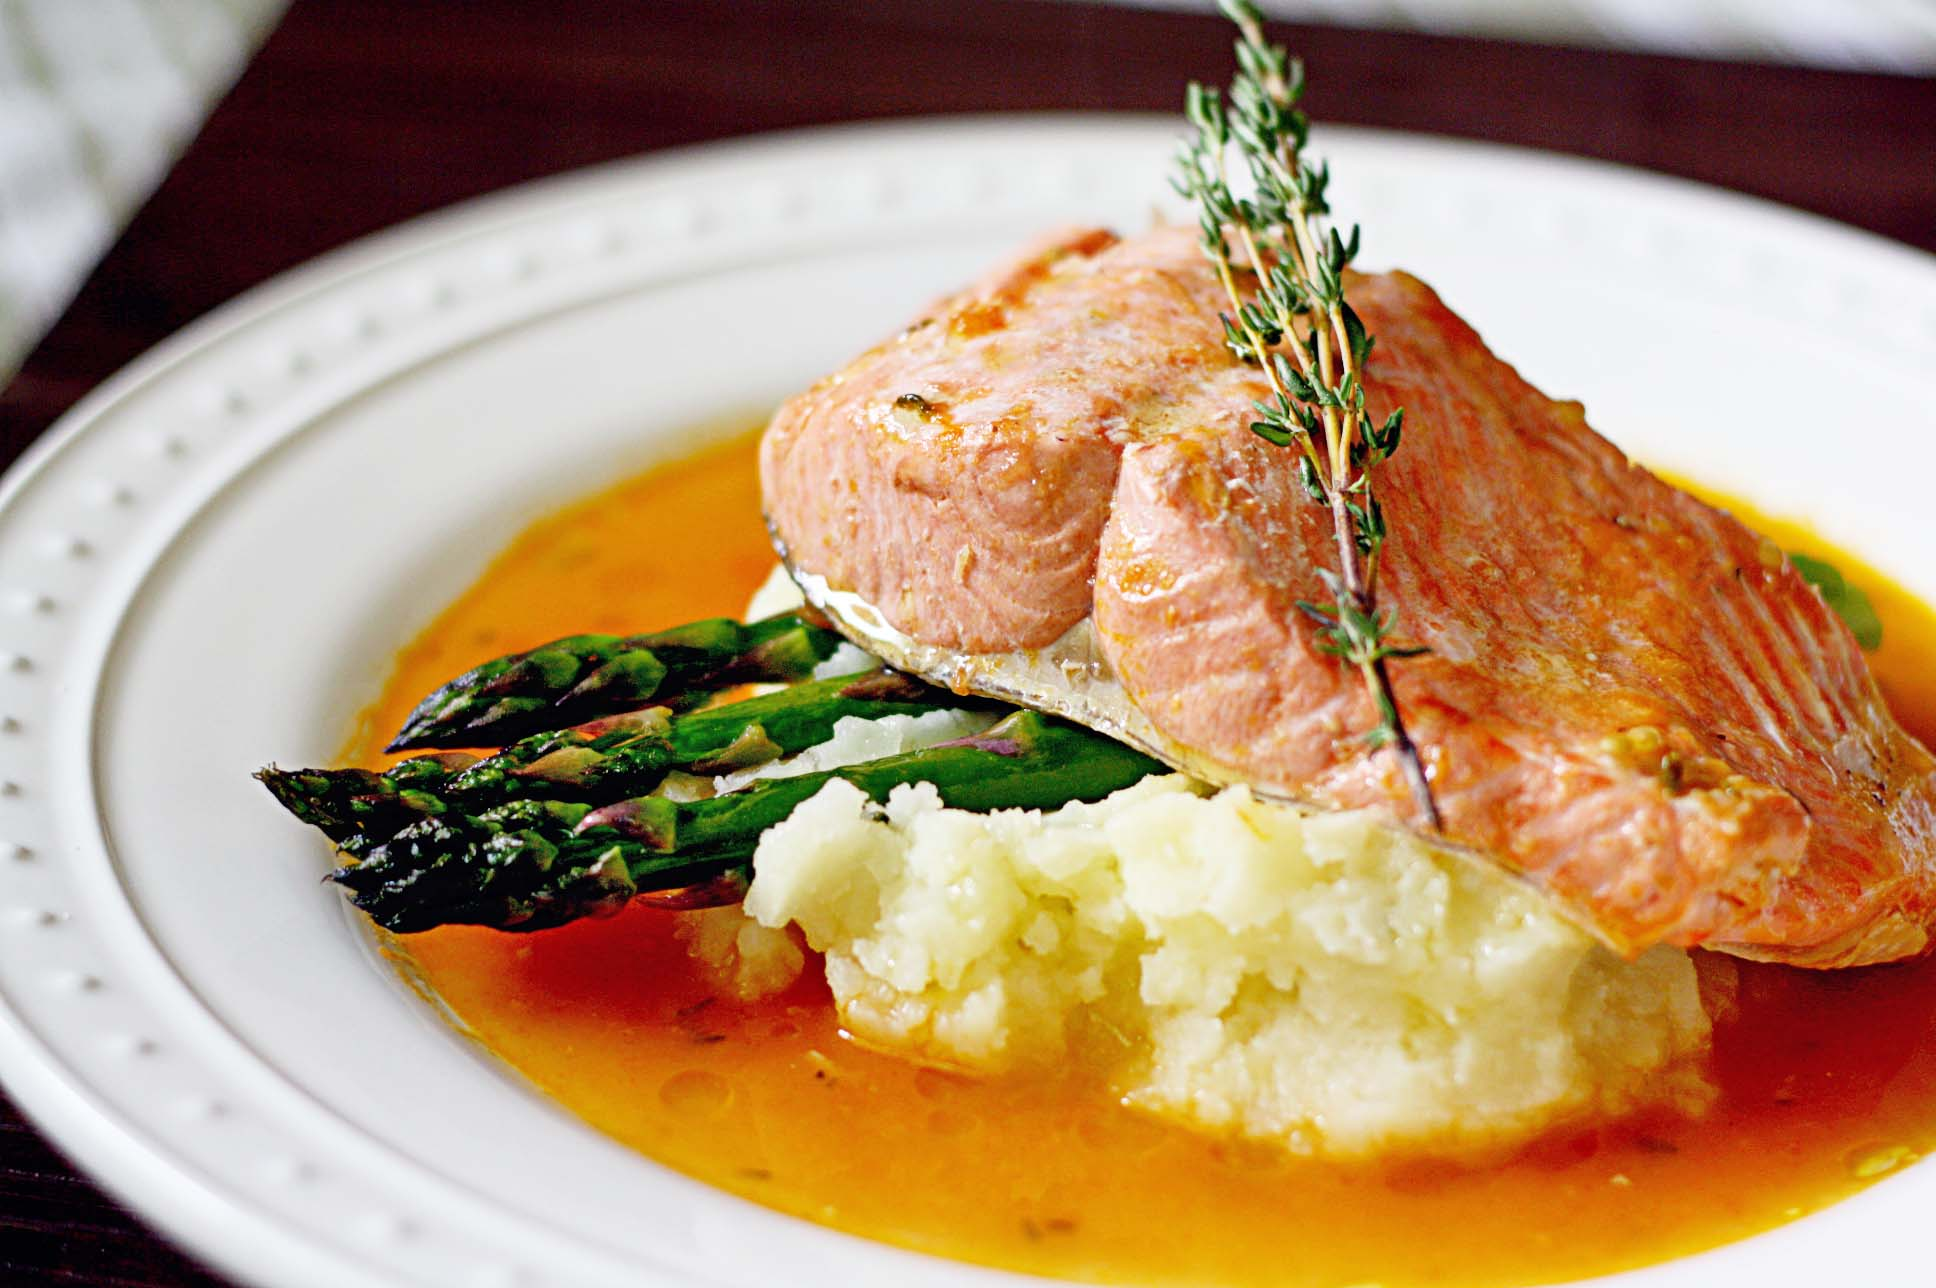 Perhaps there is a better meal than salmon, garlic mashed and asparagus, we just don't know what it would be. Just like we don't know why they placed a small tree branch on our food.